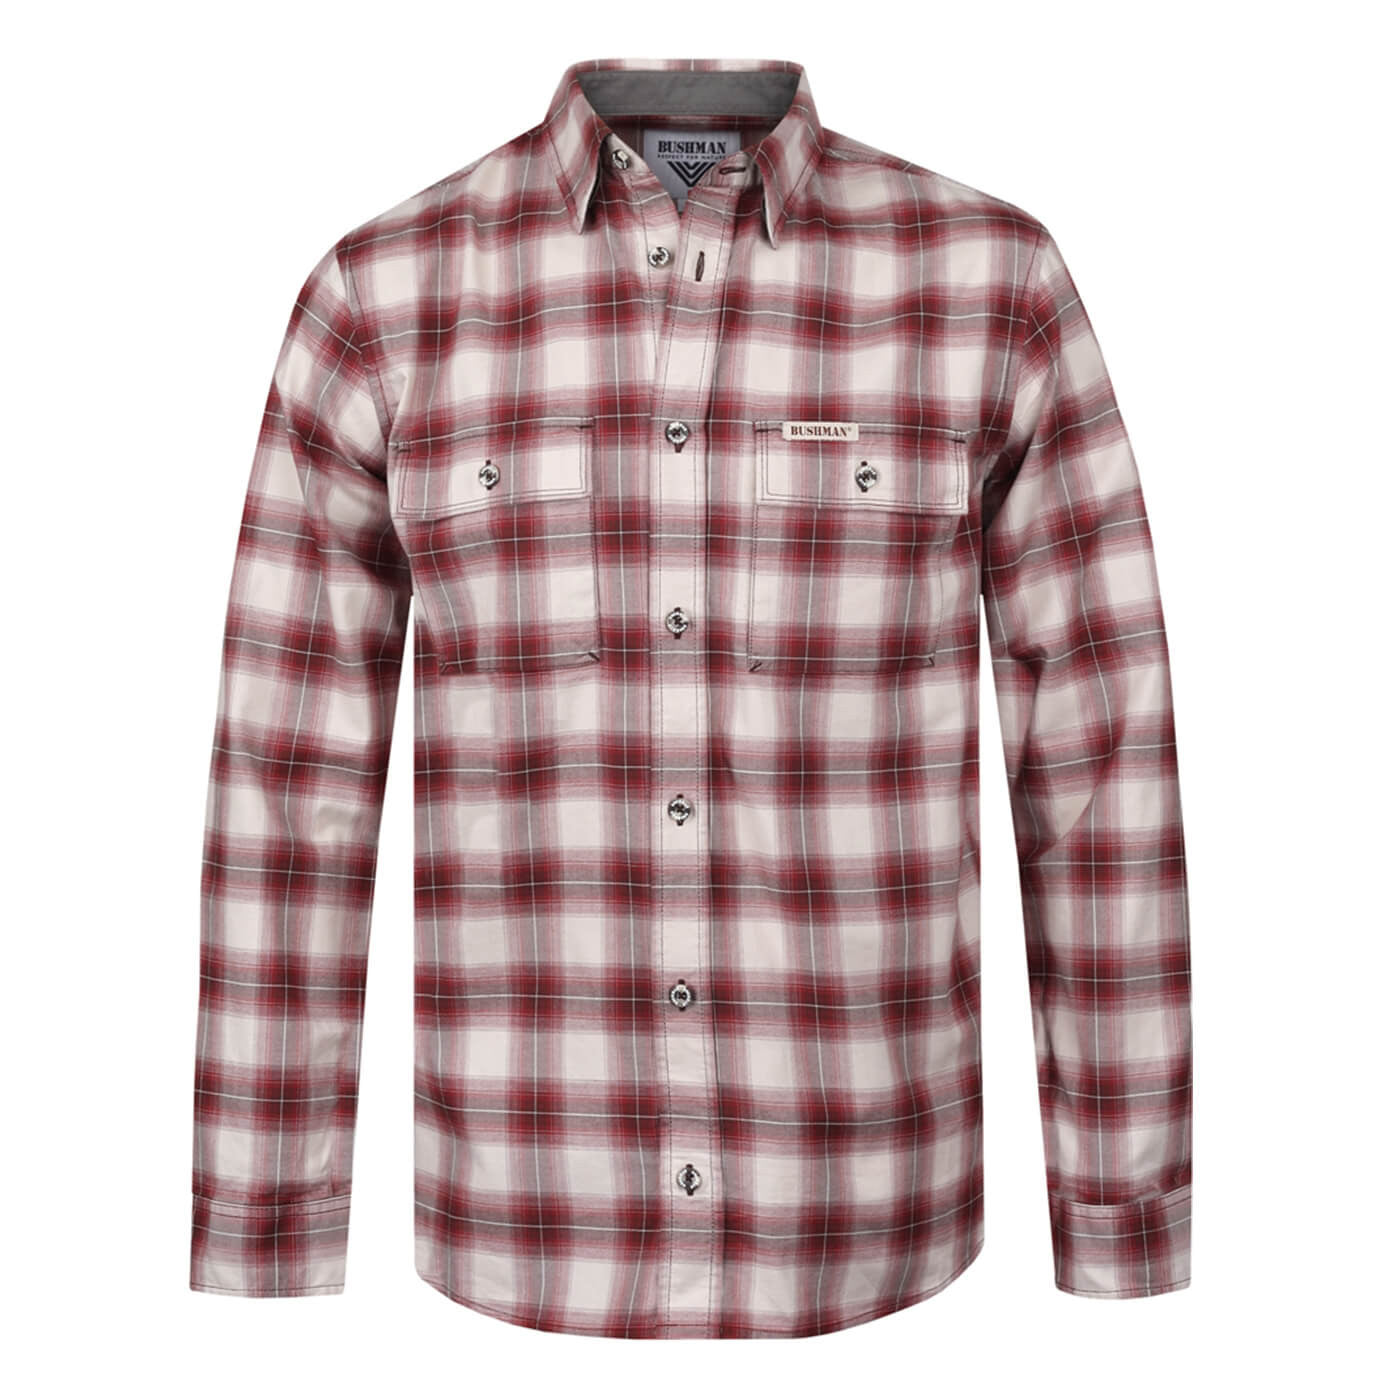 BUSHMANSHOP ARBOR MEN'S RED PLAID COTTON LONG SLEEVE SHIRT